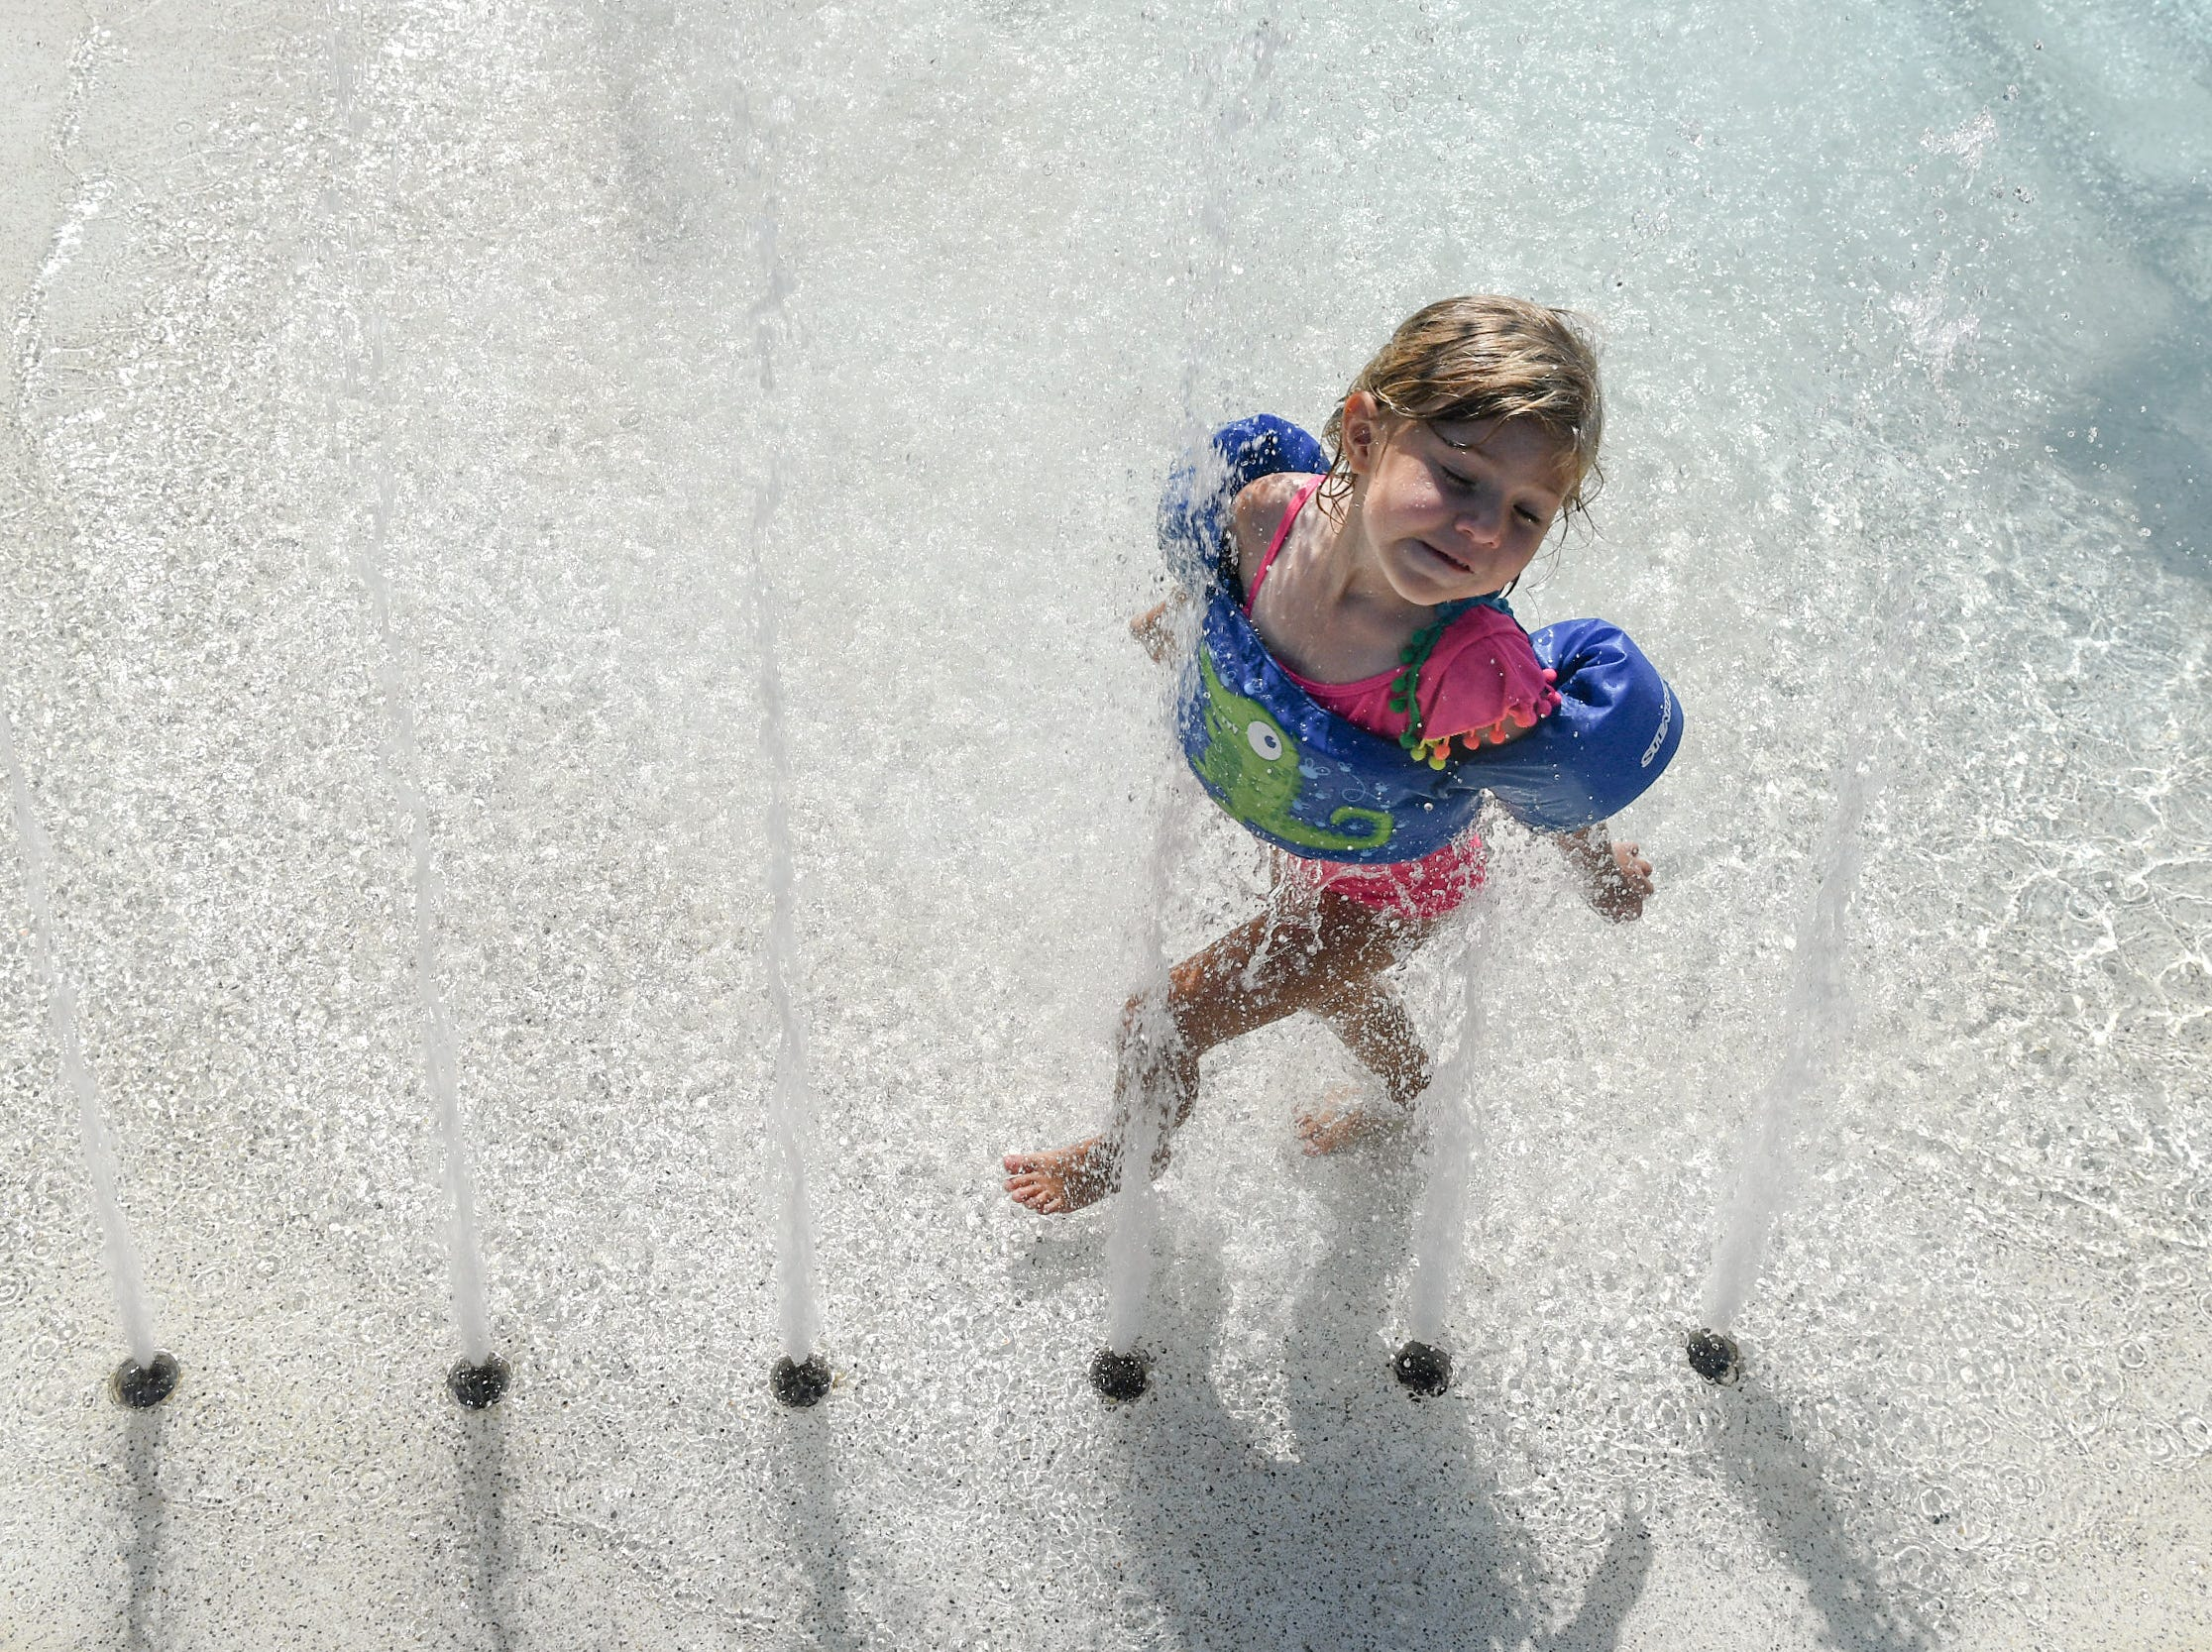 """Summertime walk"" Madelynn Pardani of Piedmont runs through water at the Anderson Area YMCA Water Works pool area in Anderson on Wednesday. The first day of summer is June 21."